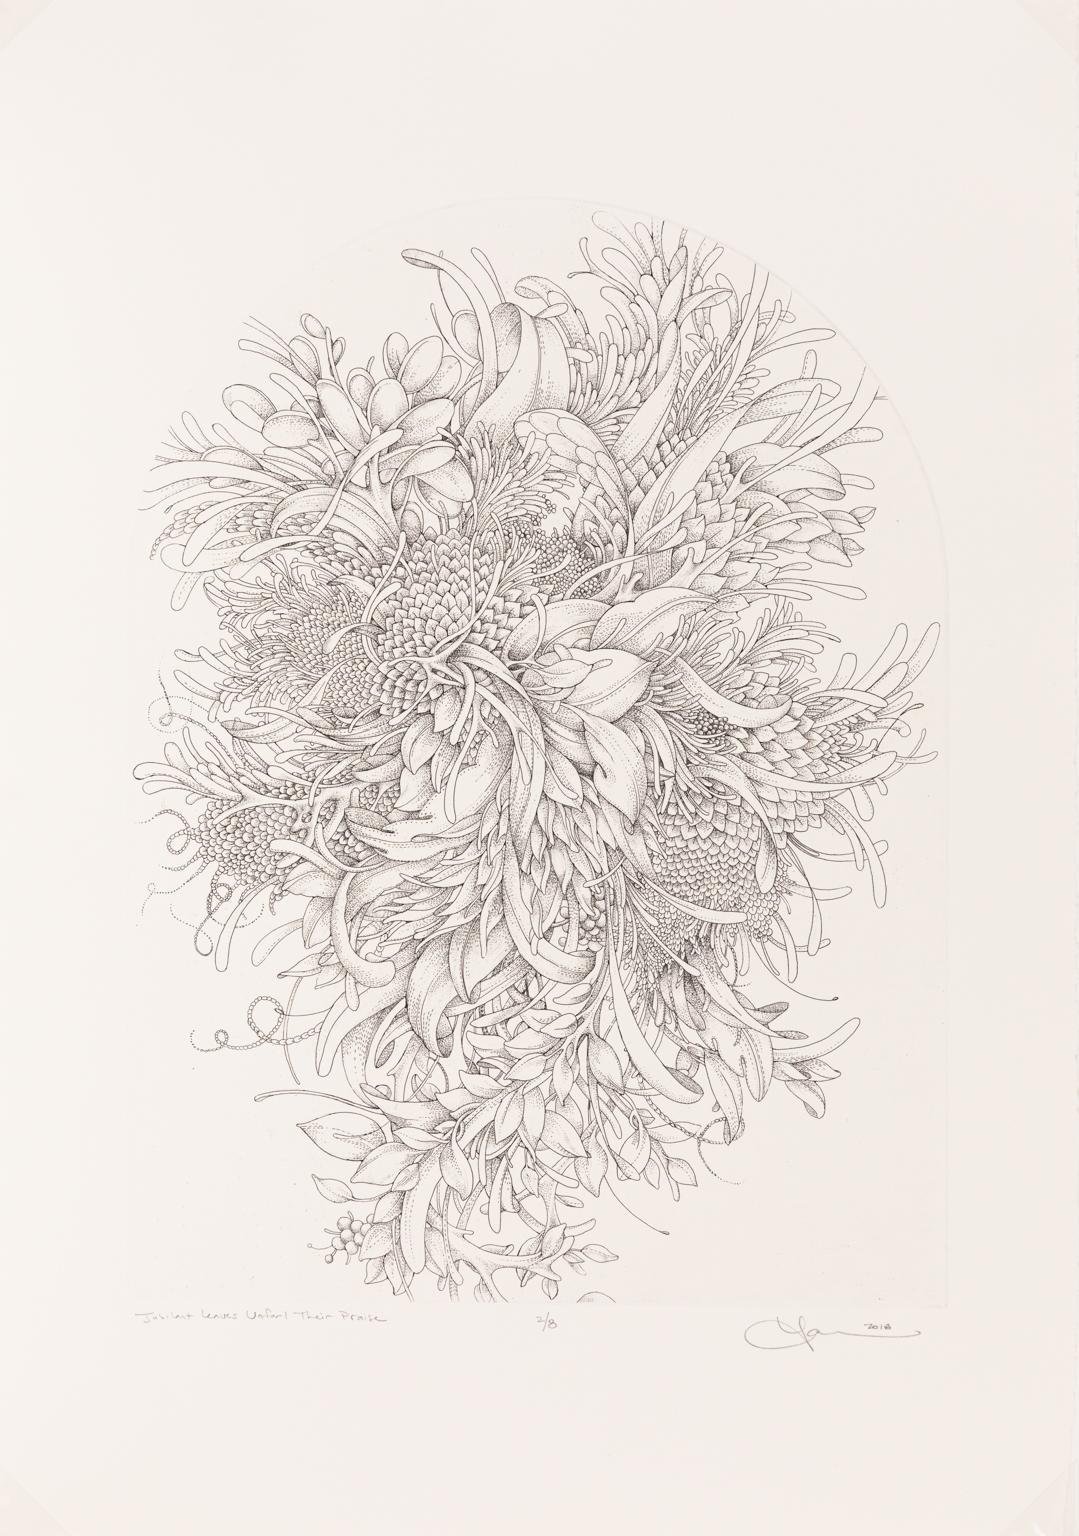 Jubilant Leaves Unfurl Their Praise  Etching of Underwater Coral and Plant Life